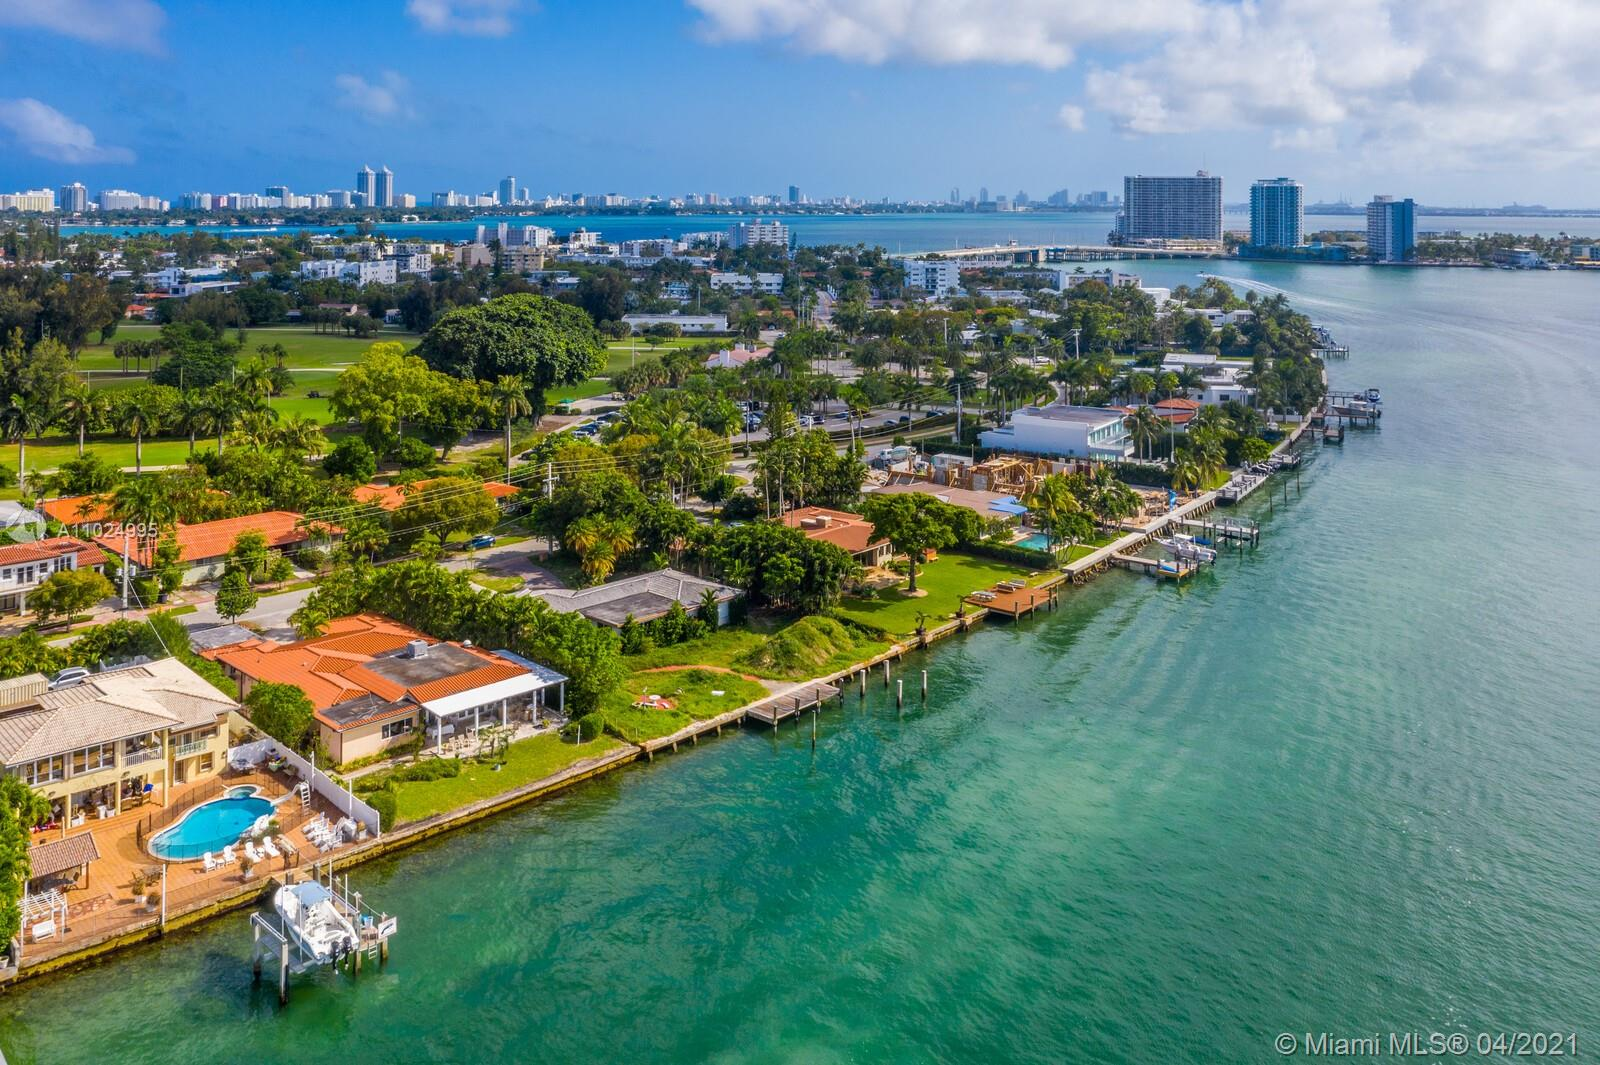 Rare opportunity to own one of the largest lots on the Miami Beach island of Normandy Shores. With over 18,000 sq. ft. and more than 105 ft. of wide open-bay views, this dream property is ready to become your custom tropical oasis. The privately gated neighborhood boasts several luxury amenities including an 18-hole golf course, a club house, waterfront parks & tennis courts. This property won't last long! Call/text to schedule your private preview.